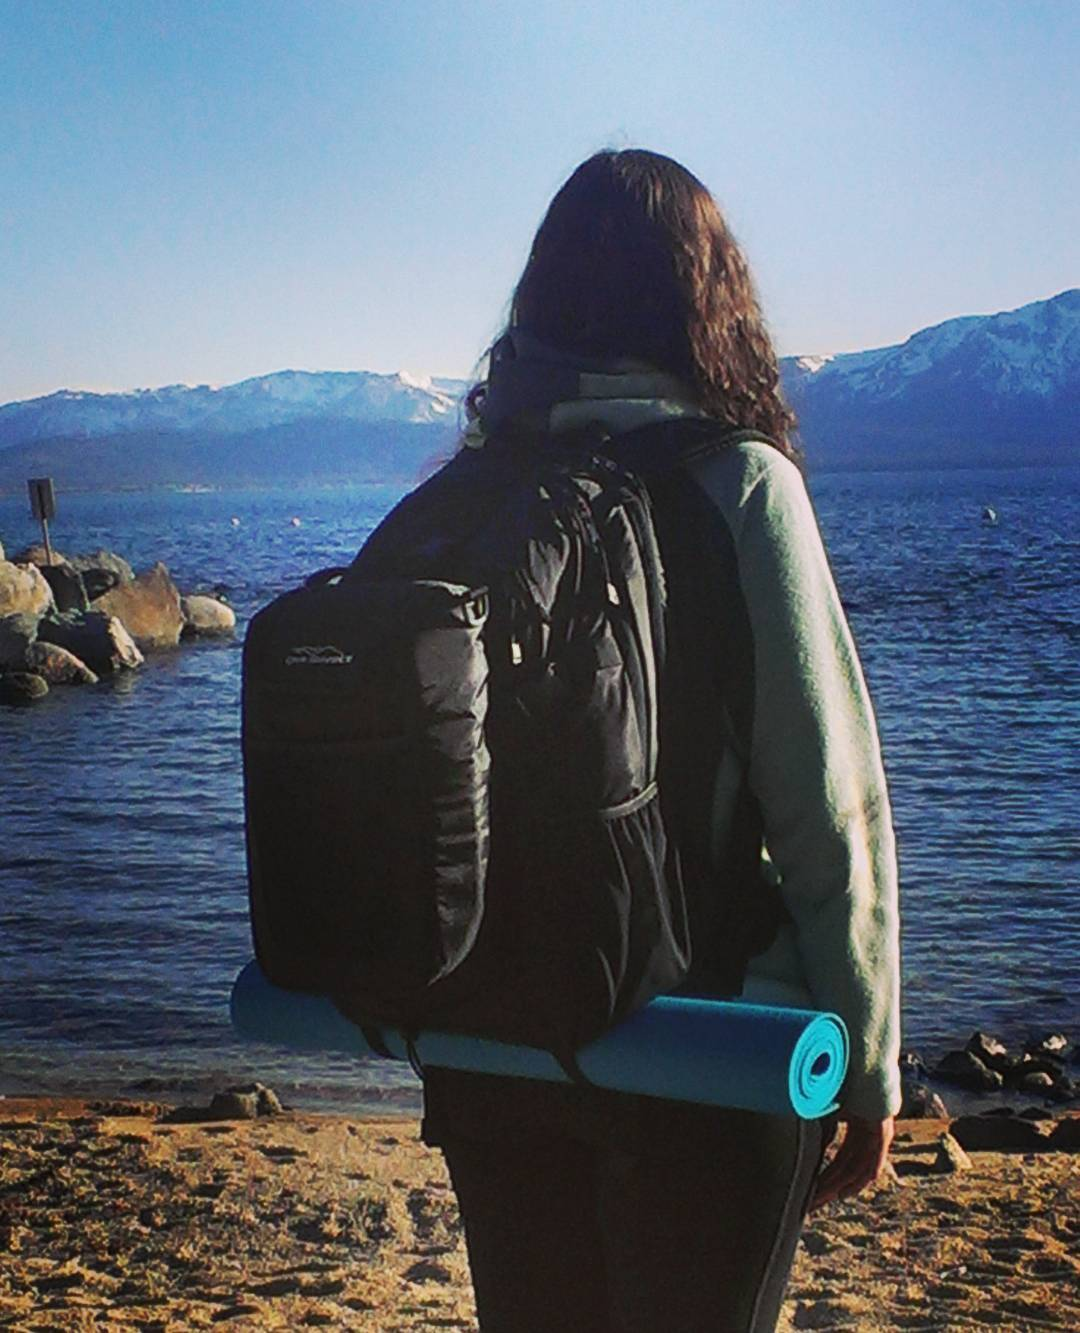 Great day for some #yoga on the #beach.  Thanks @marielberns! #getoutside #laketahoe #backpacks #coolers #renotahoe #graniterocx #outdoorsrocx